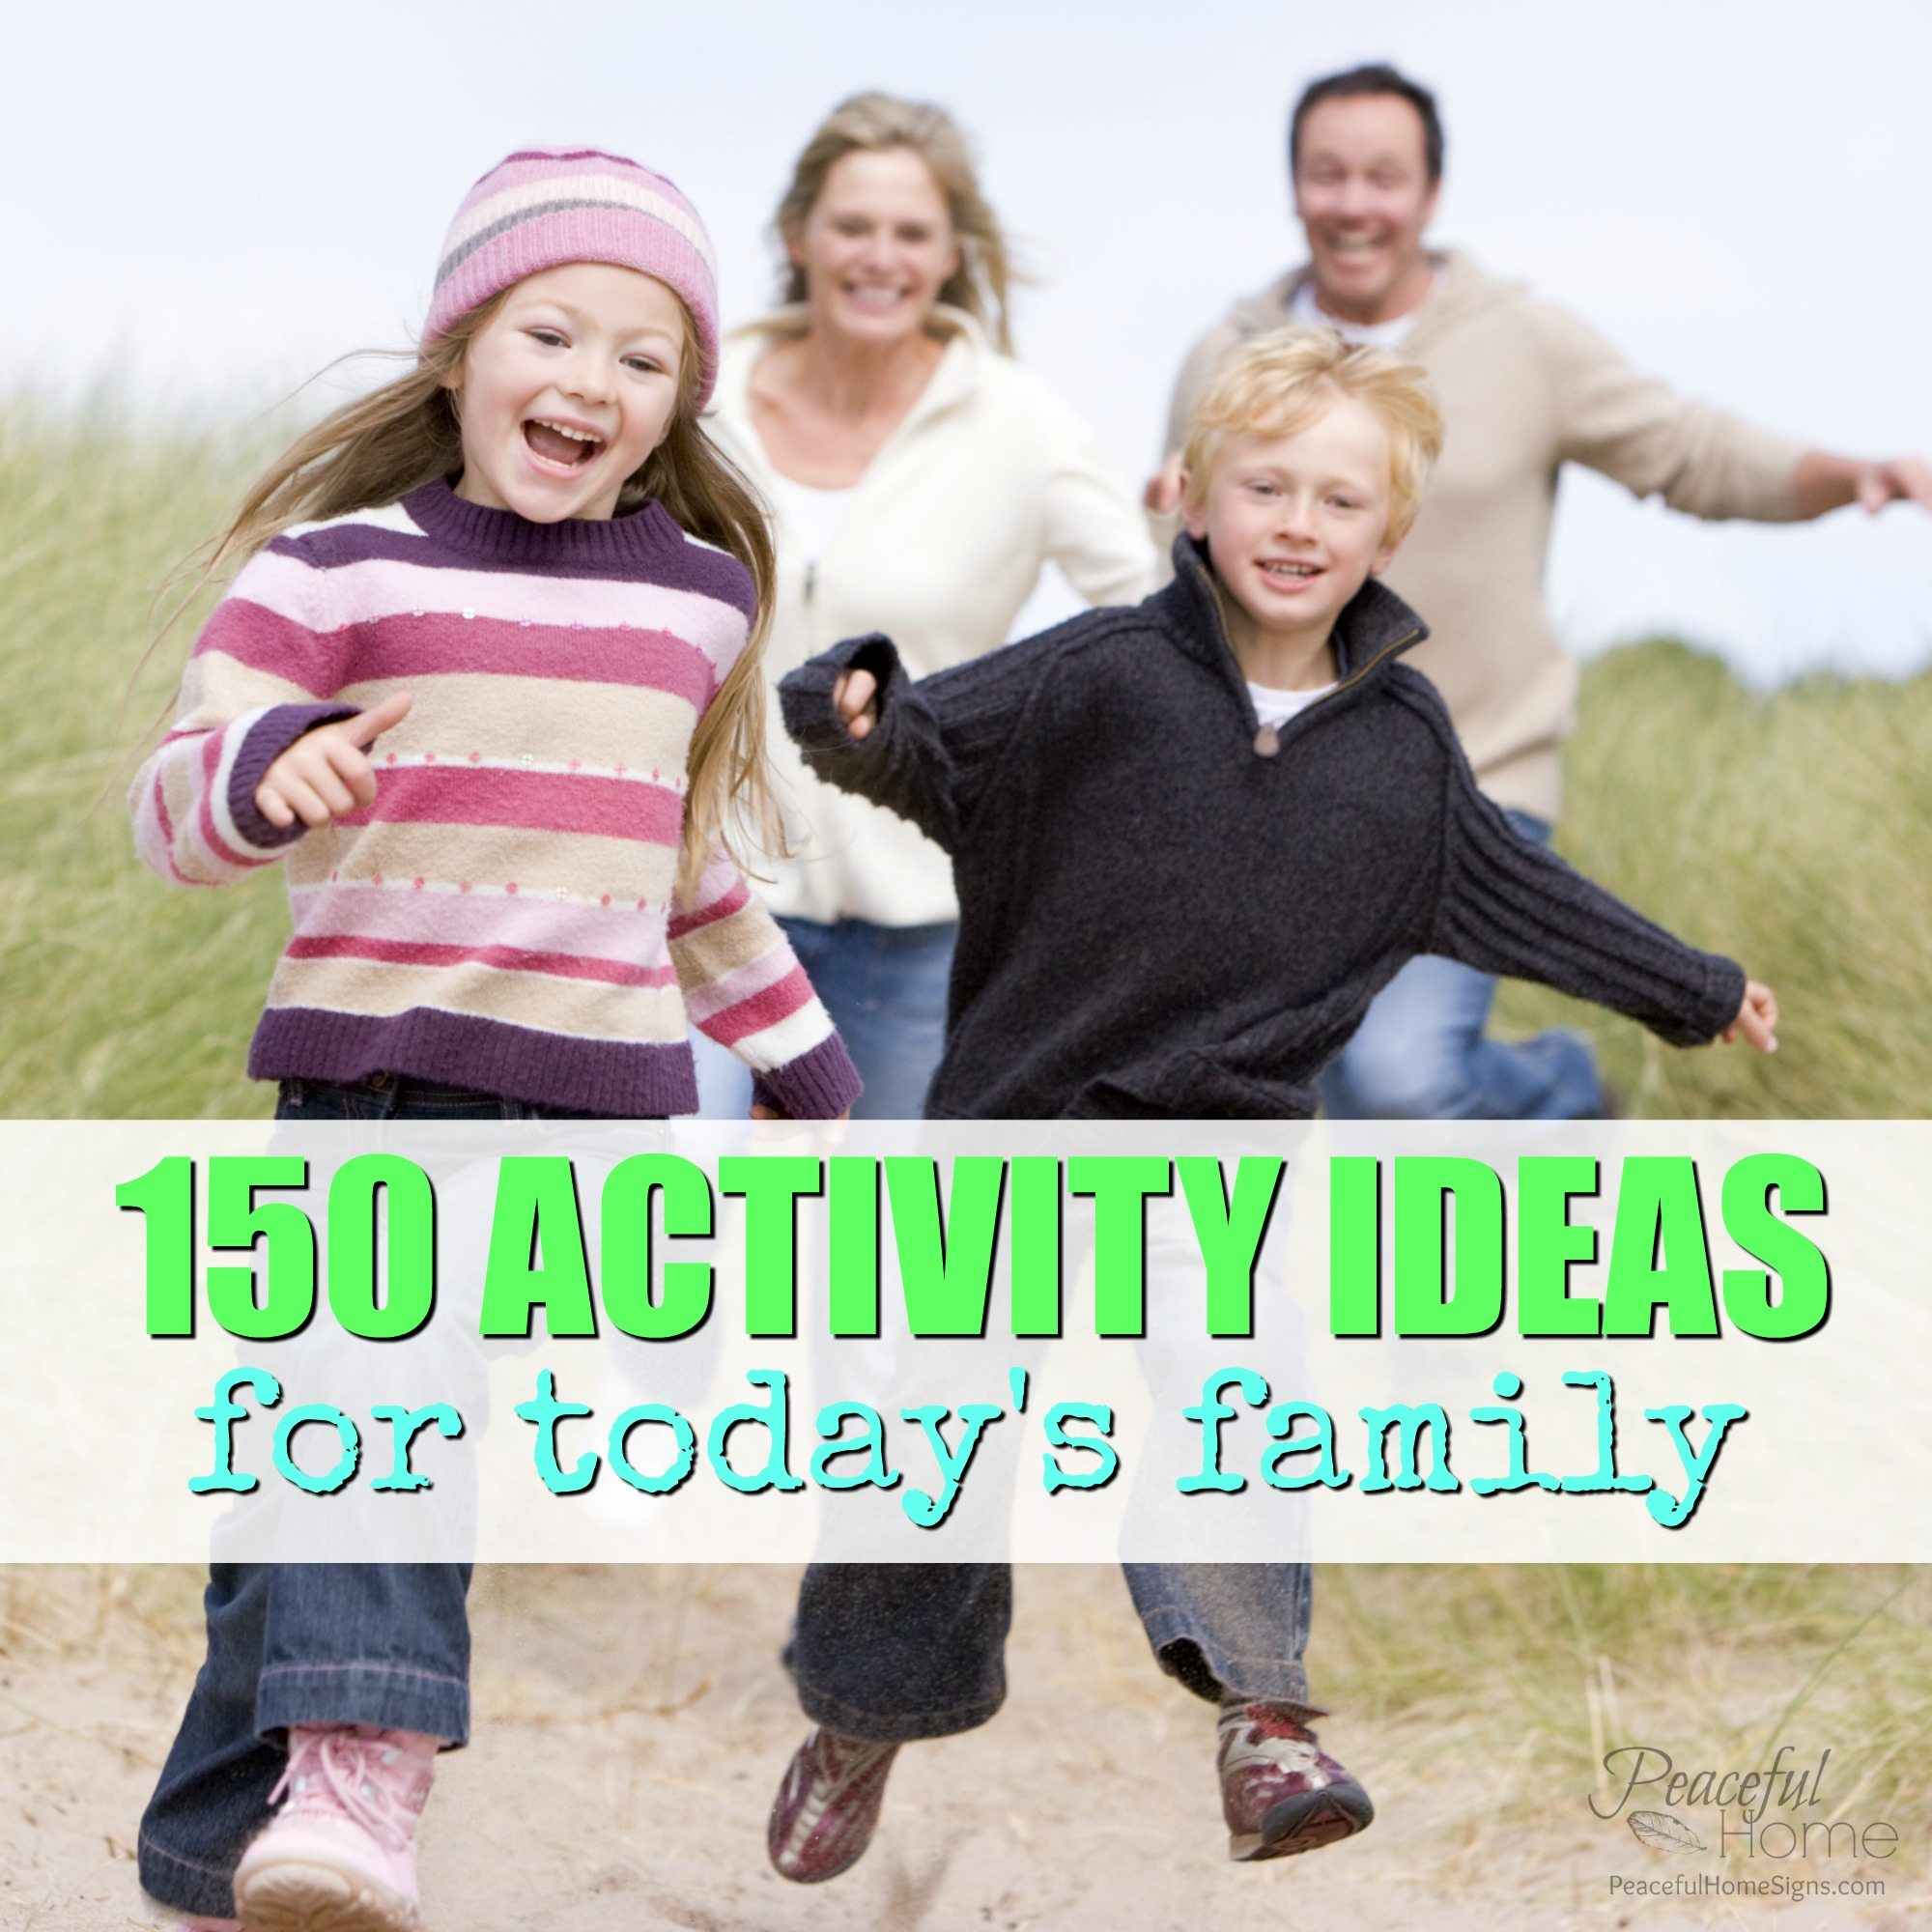 150 Activity Ideas for Today's Family!